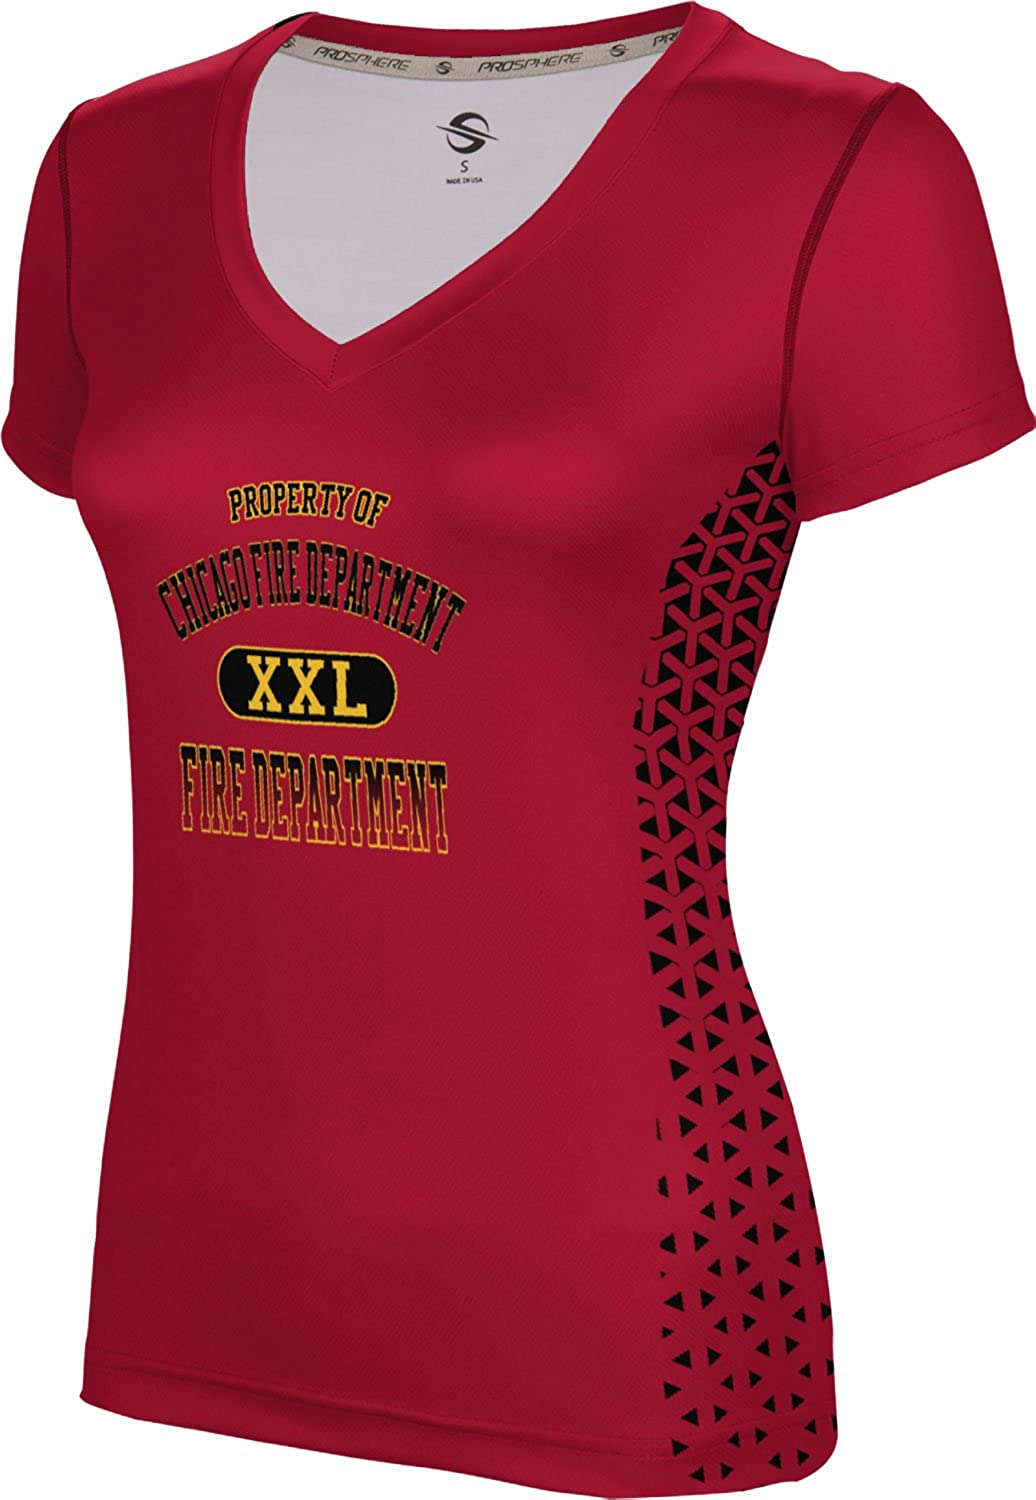 ProSphere Women's Chicago Fire Department Geometric SL V-Neck Training Tee